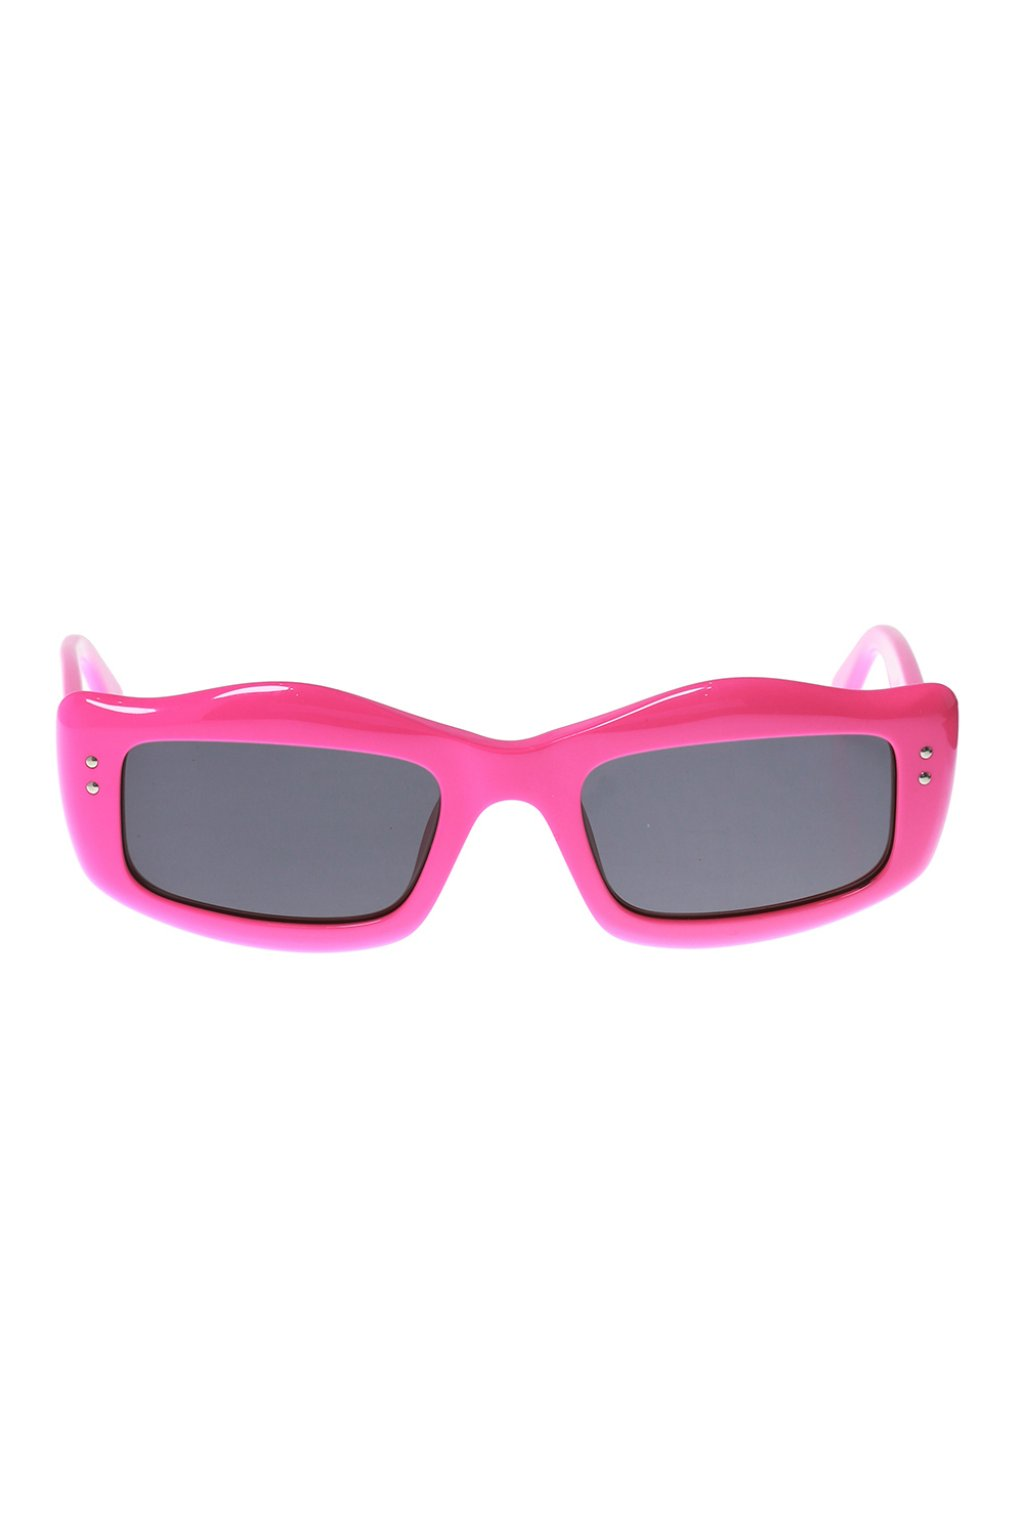 Moschino Logo sunglasses